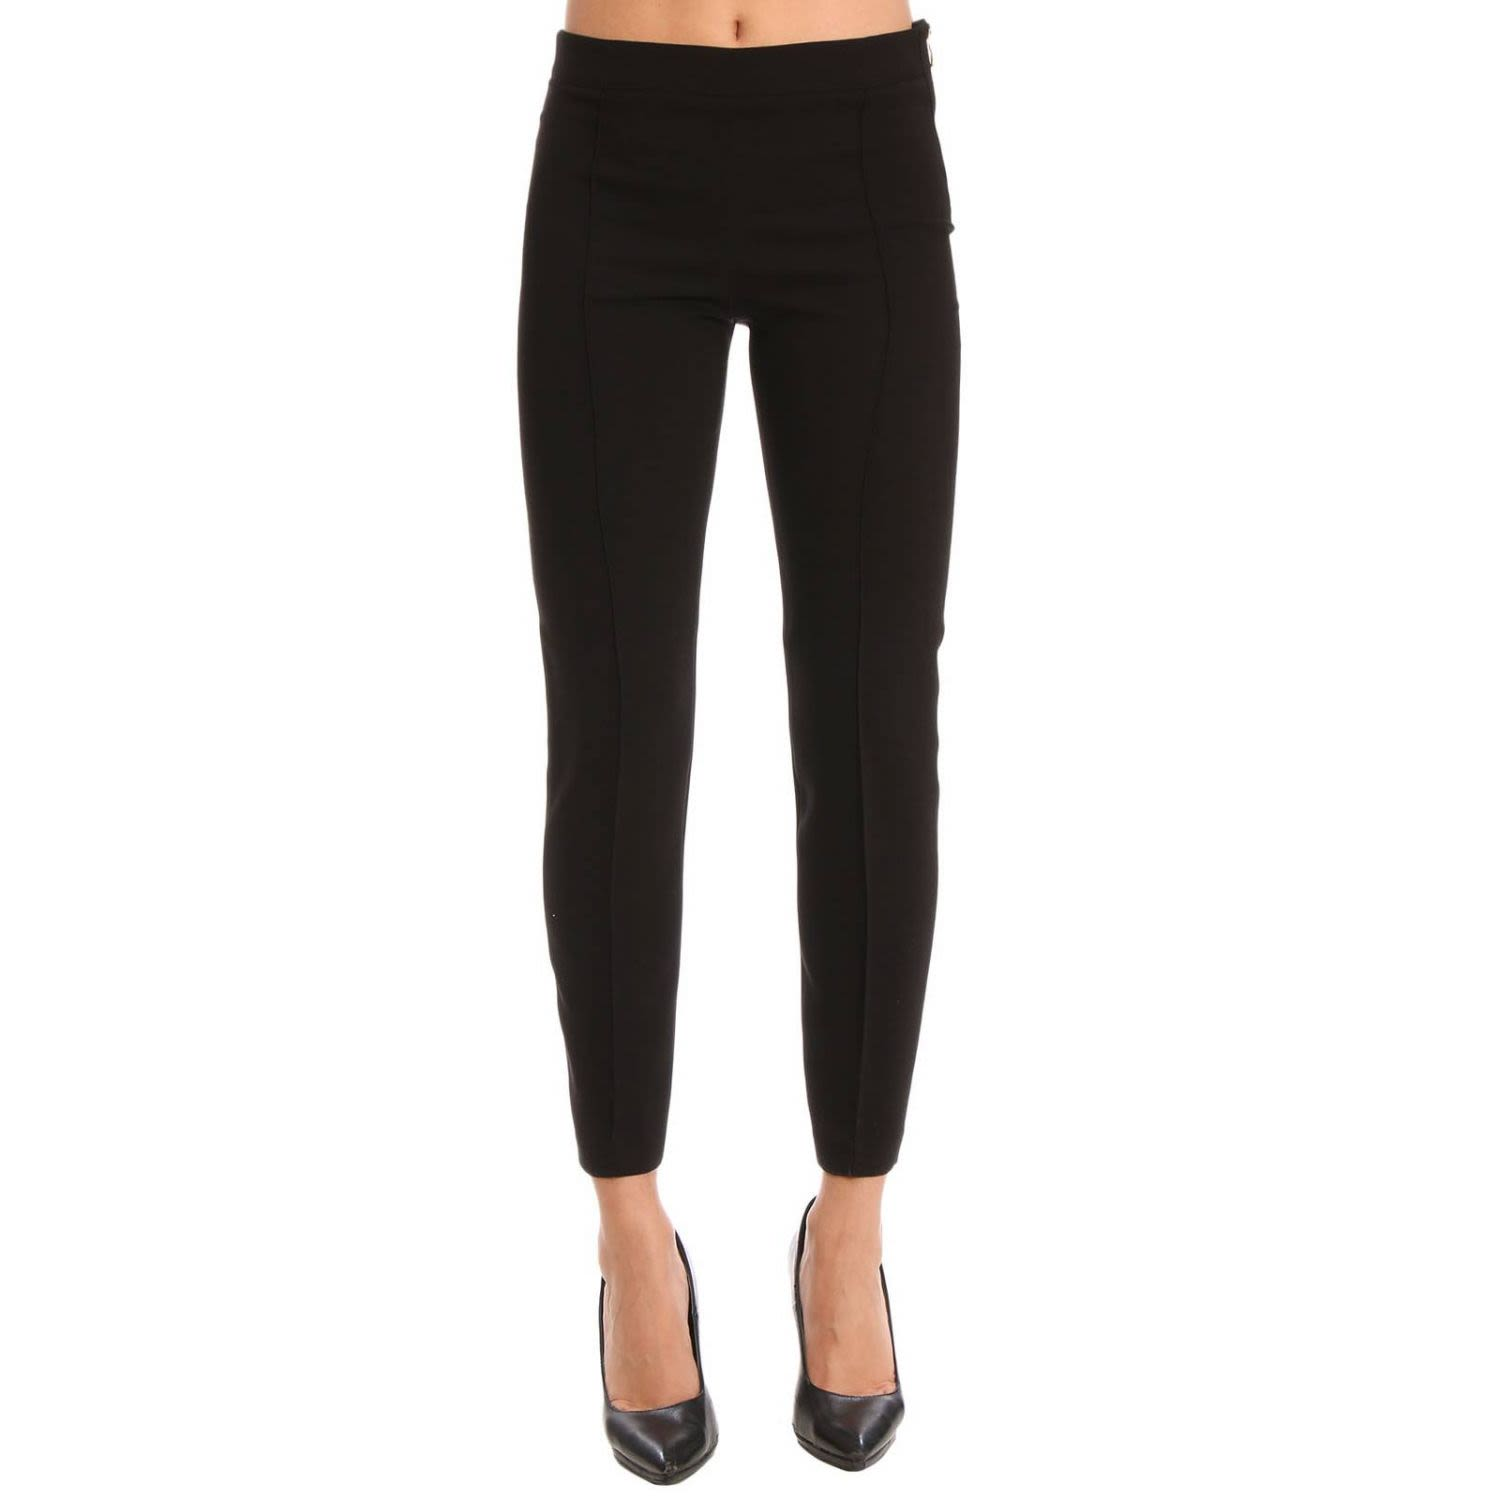 Boutique Moschino Pants Pants Women Boutique Moschino